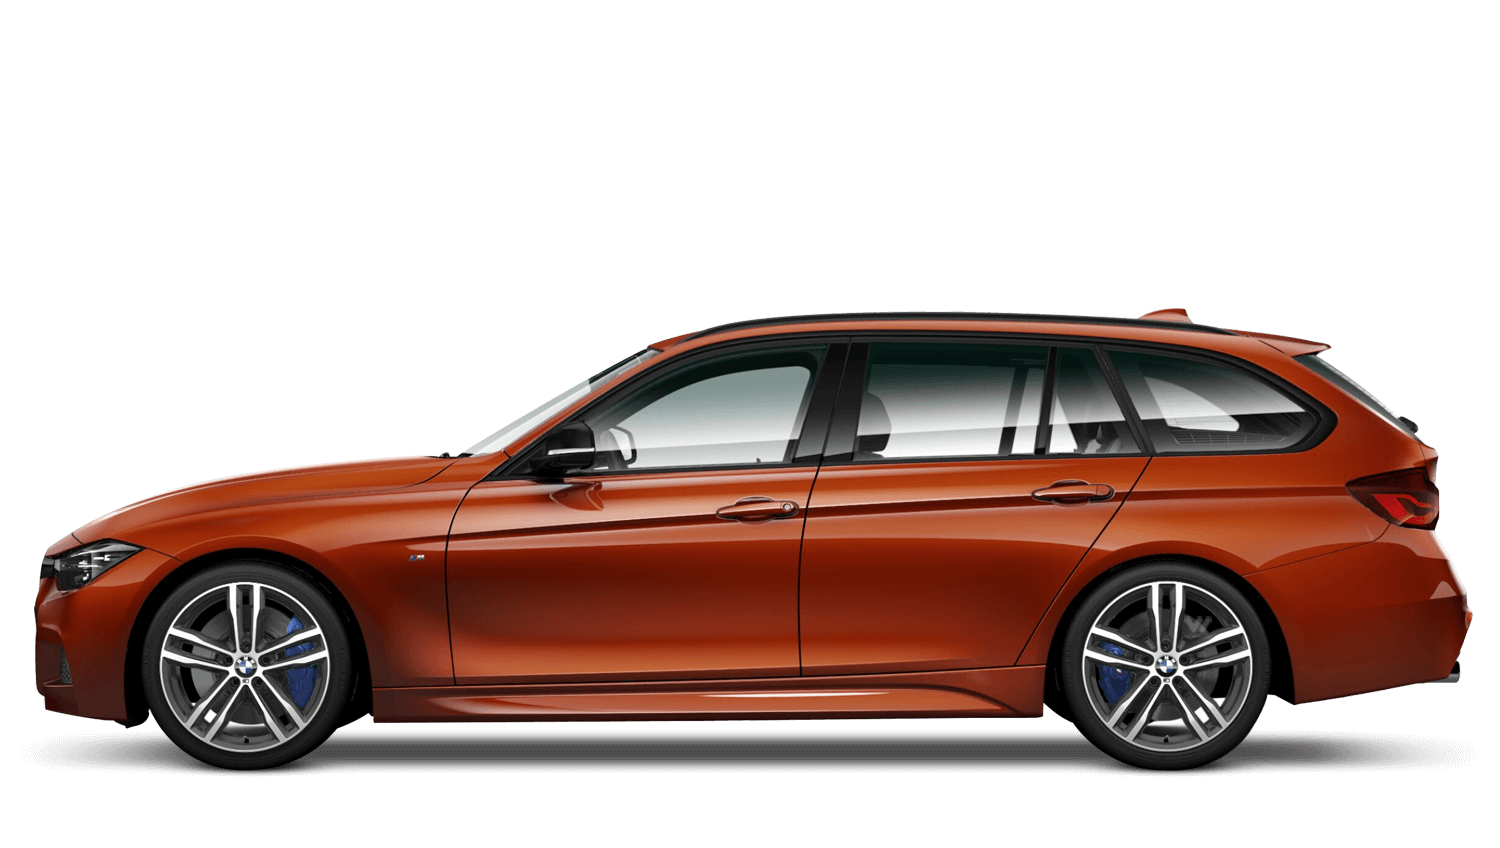 bmw 3 series touring m sport shadow edition finance available barons chandlers bmw. Black Bedroom Furniture Sets. Home Design Ideas